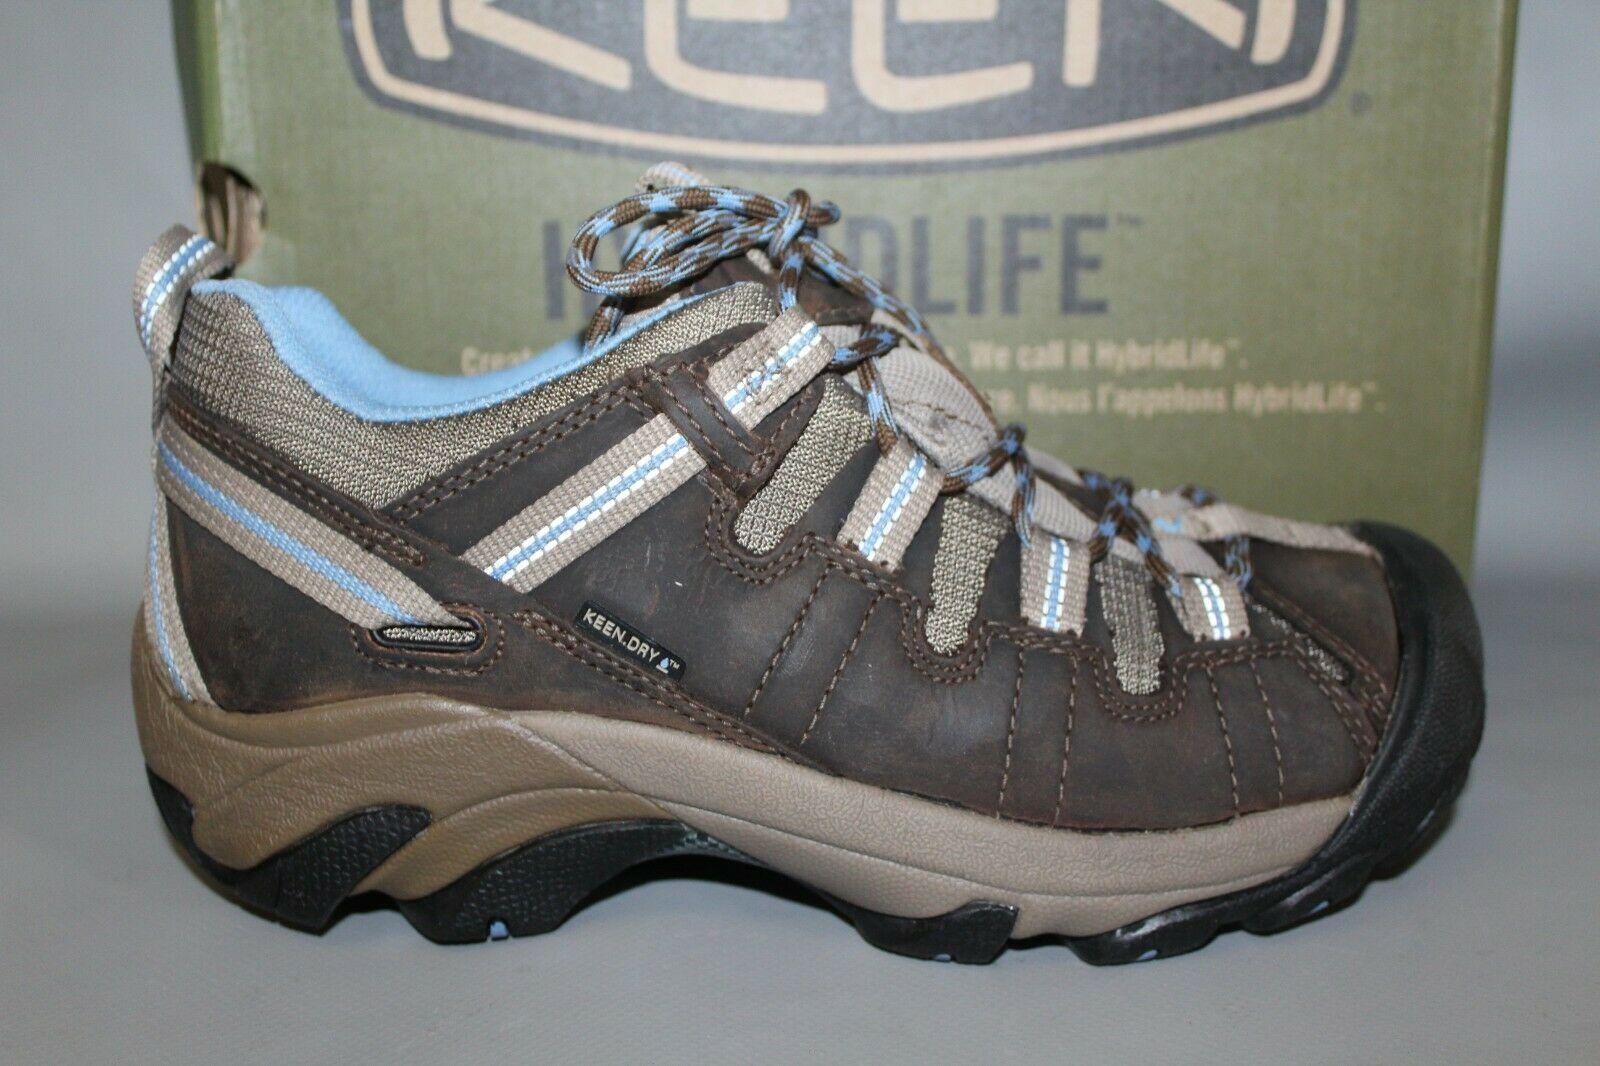 NEW Women's Keen Targhee II Leather Mid-Cut Hiking Boots   up to 42% off